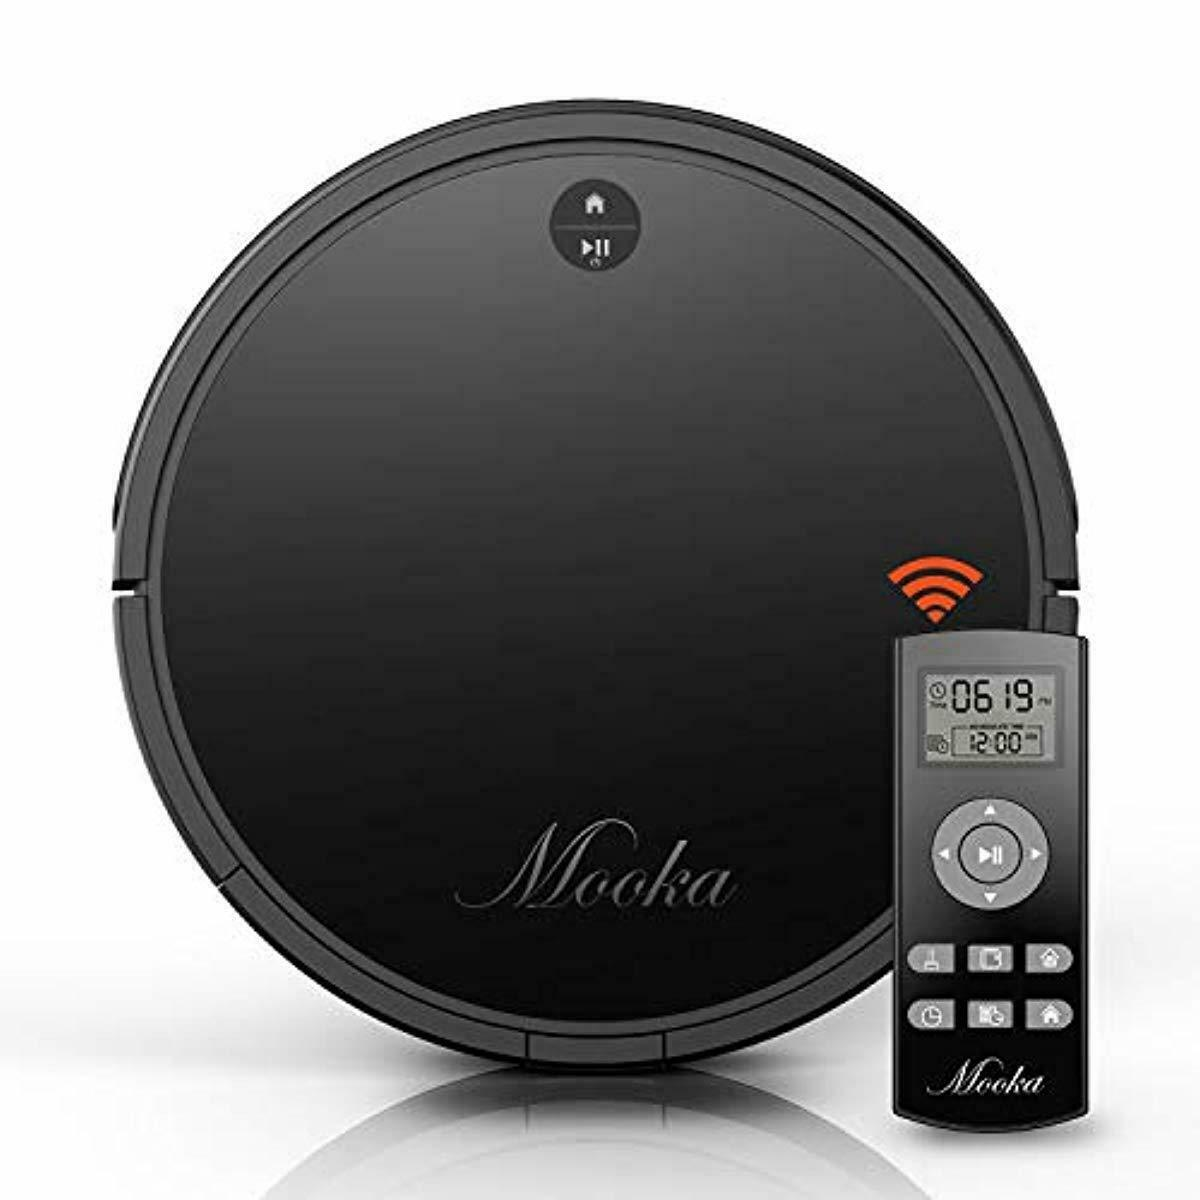 Robot Vacuum Cleaner, Mooka Auto Robotic Vacuum Cleaner with Powerful Suction, S